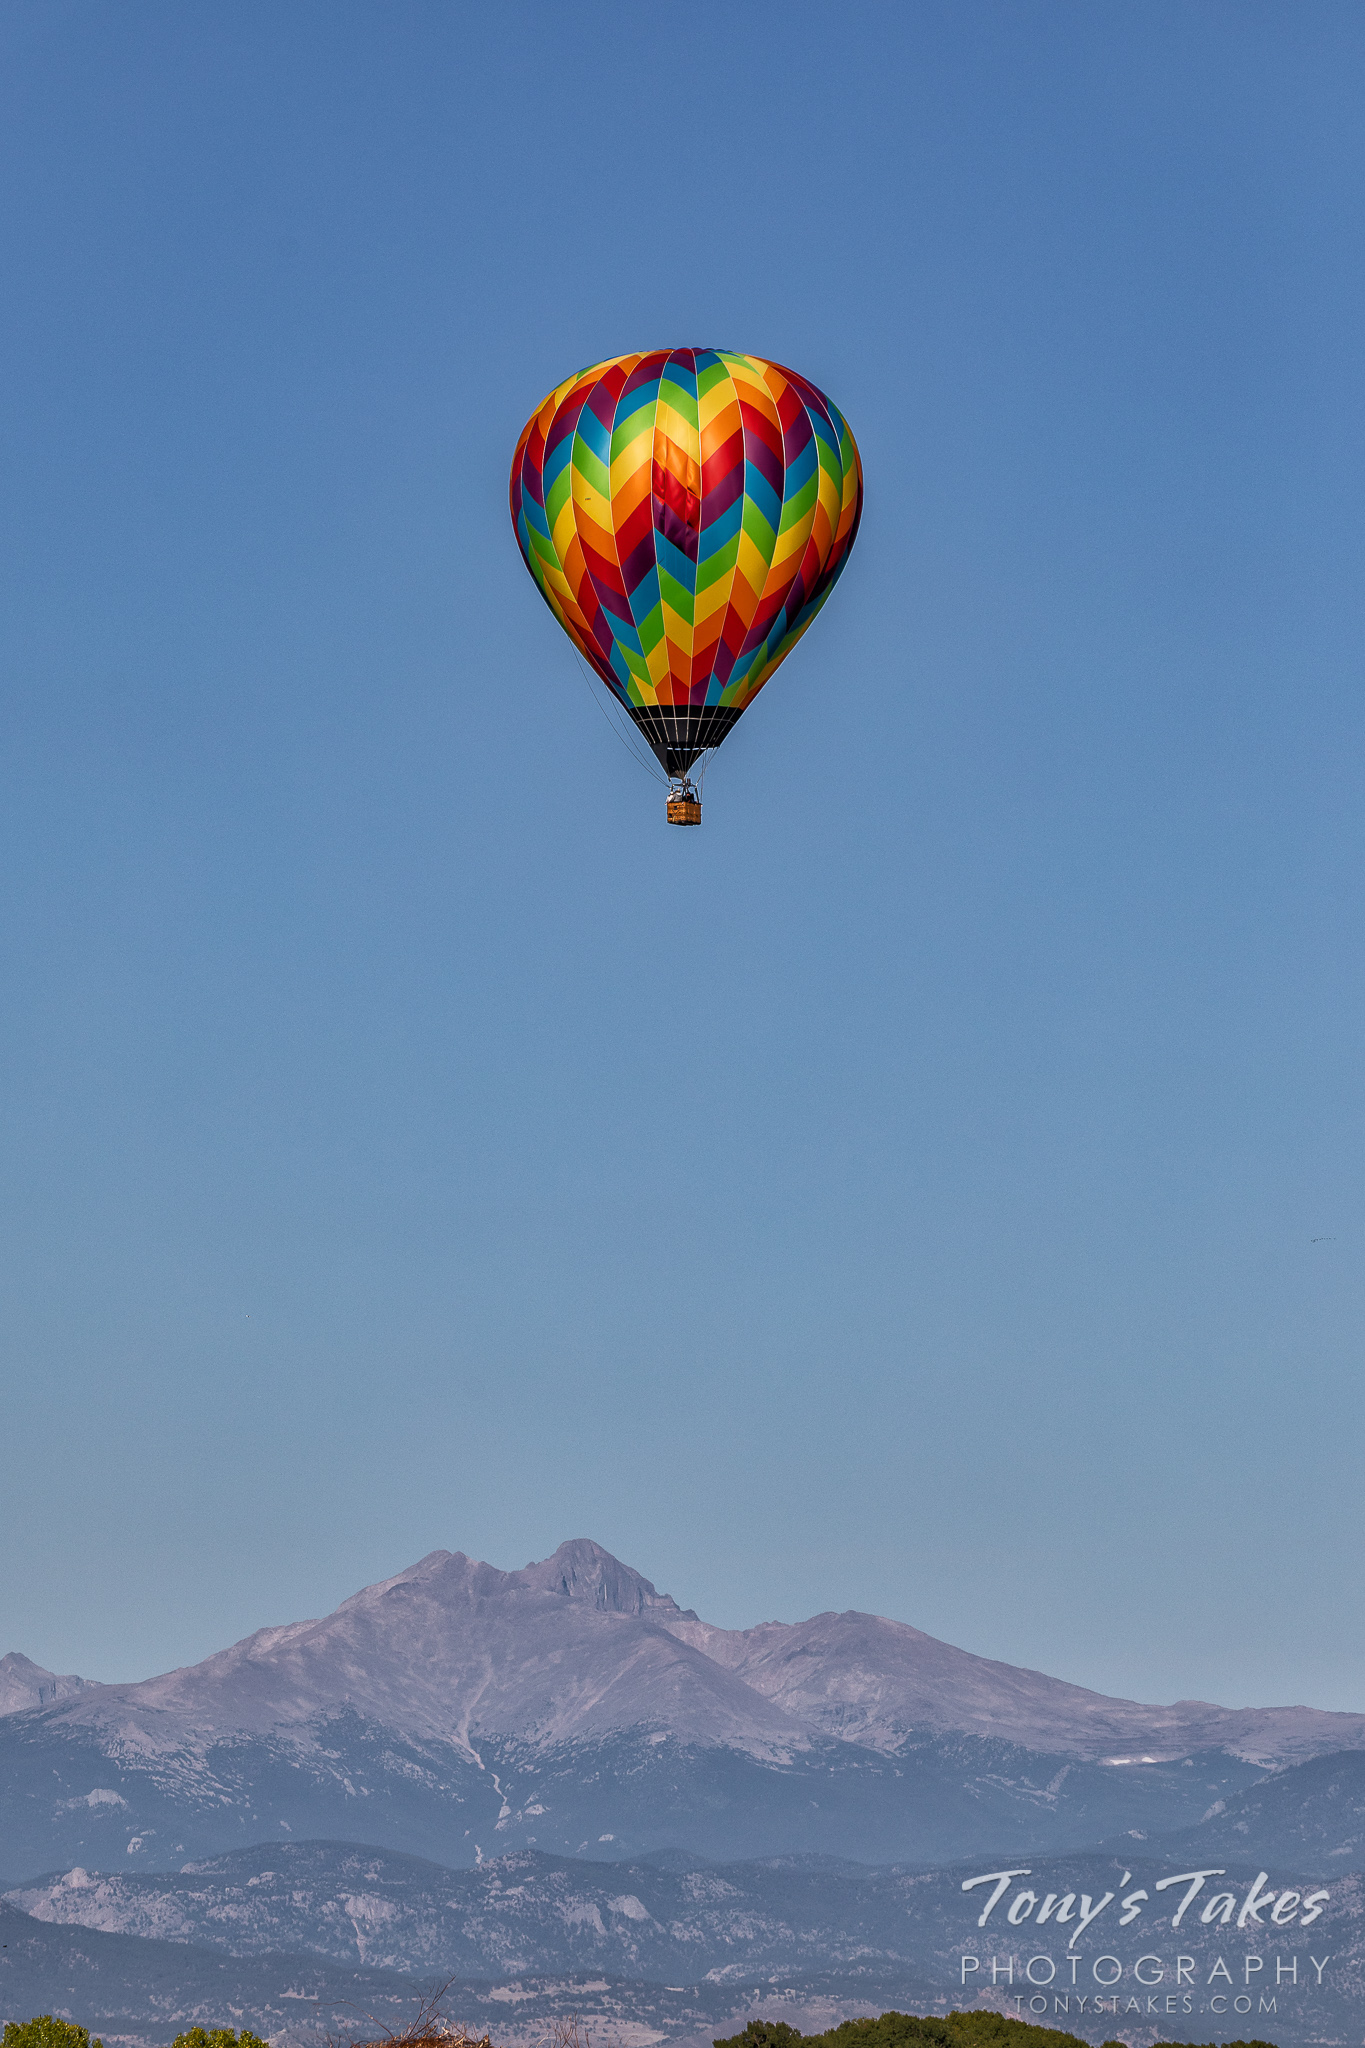 A hot air balloon floats in the air in front of the Rocky Mountains. (© Tony's Takes)